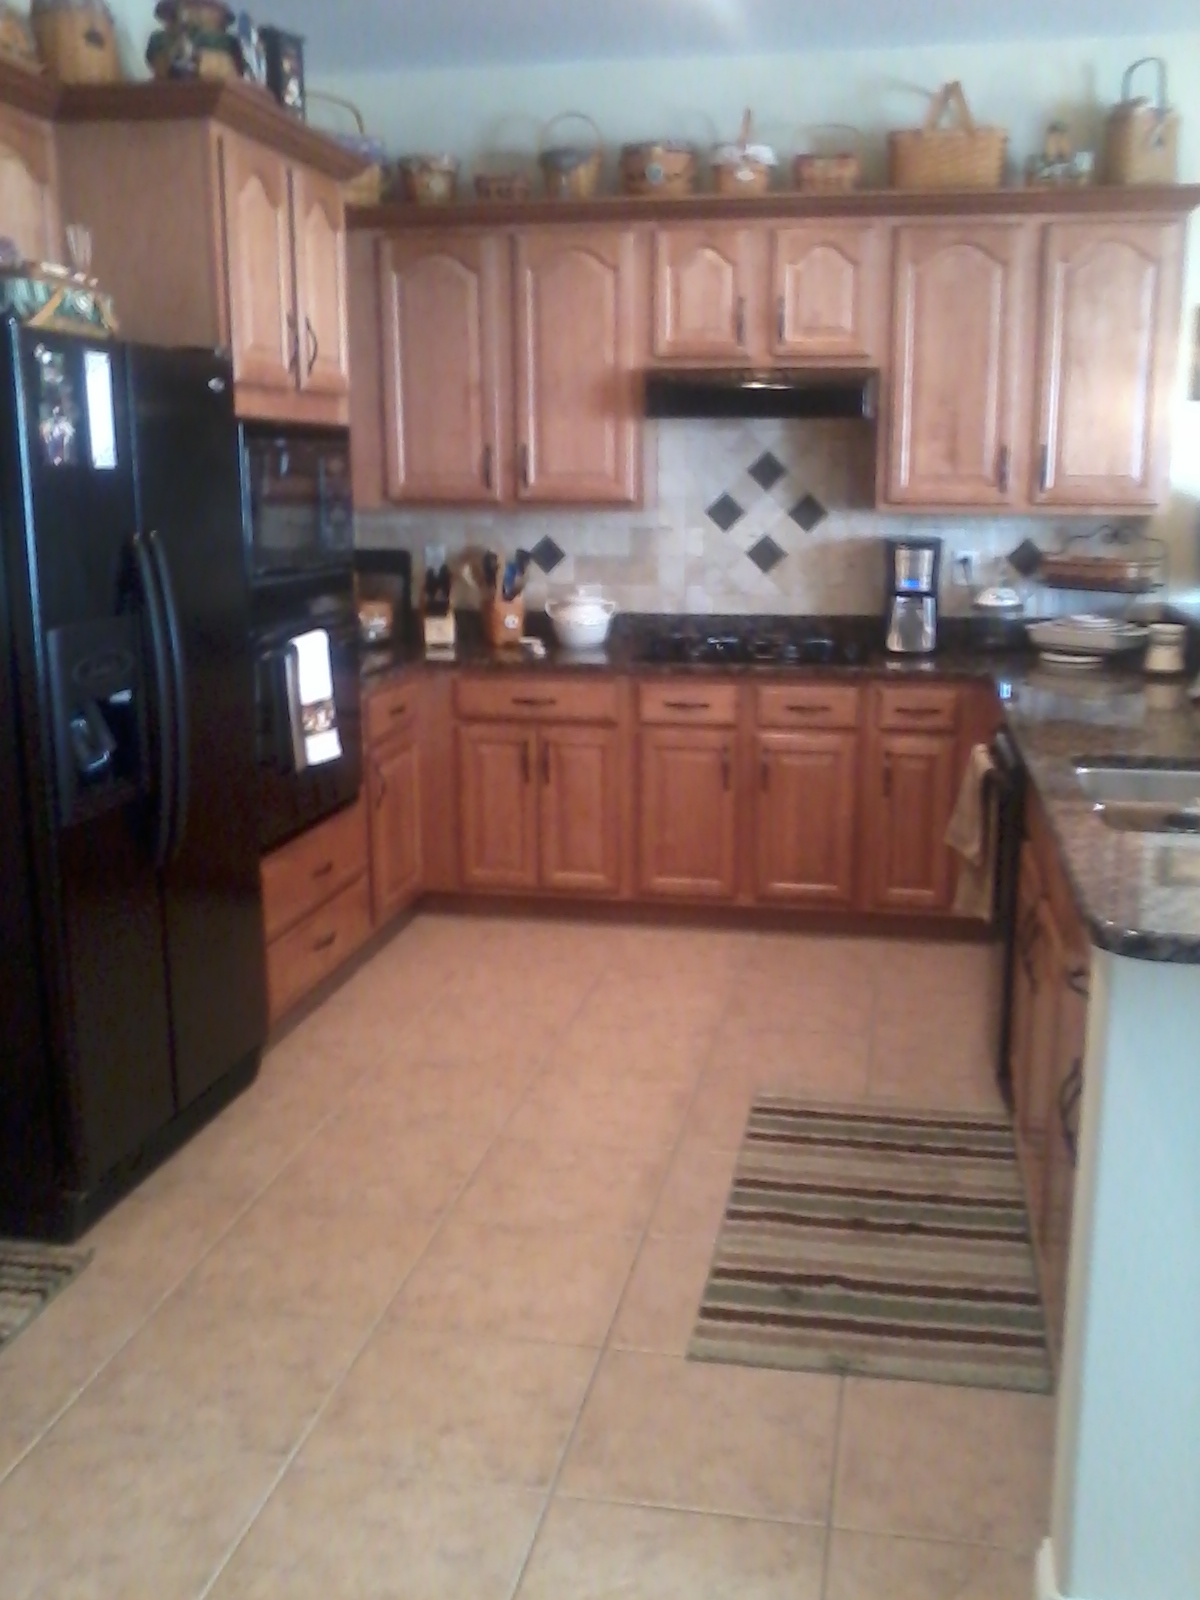 Unfinished Kitchen Cabinets Tampa Vranek 39s Custom Cabinets In Hudson Fl 727 835 8036